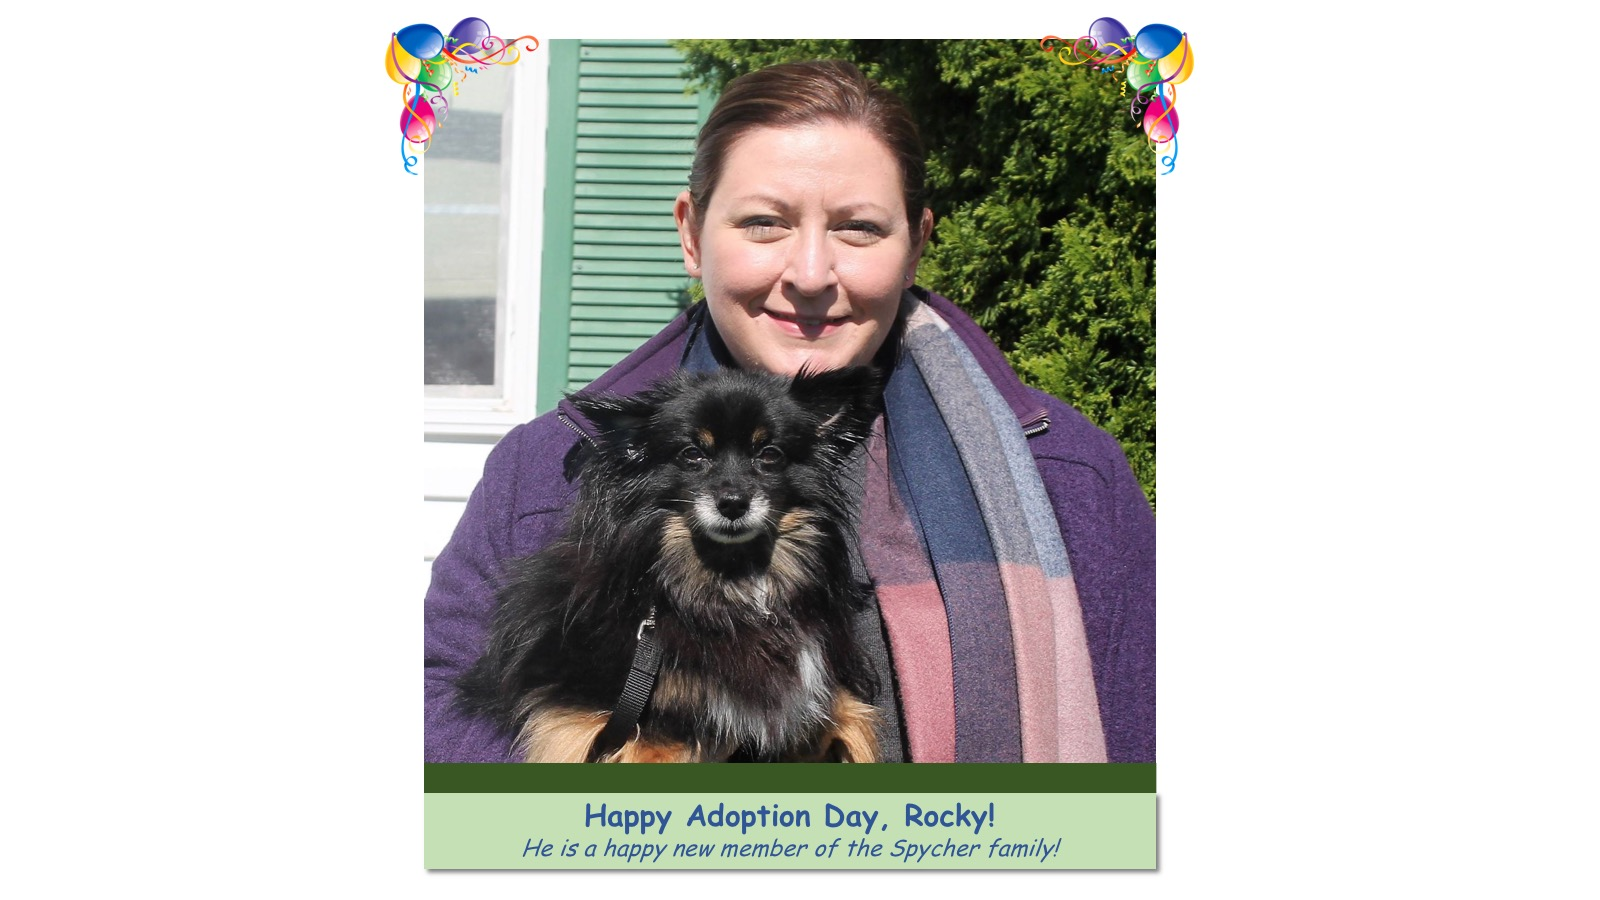 Rocky_Adoption_Photo_2018.jpg